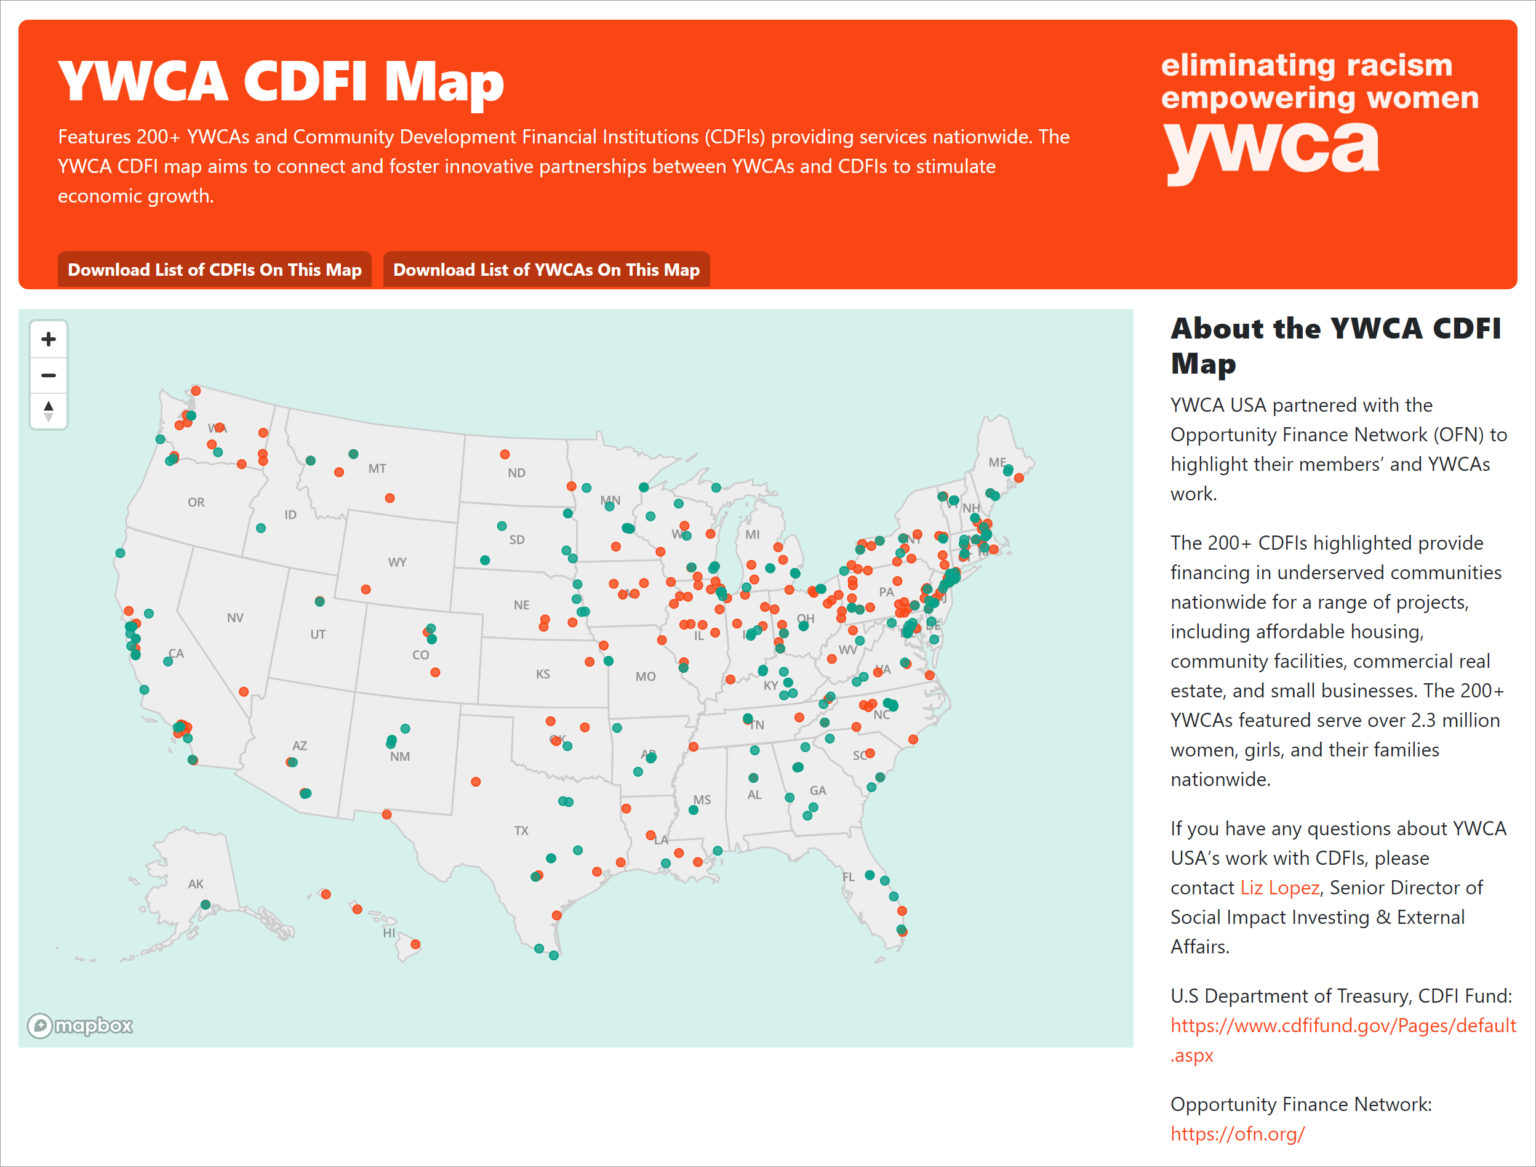 Catalysts for Change Introducing the YWCA CDFI Map